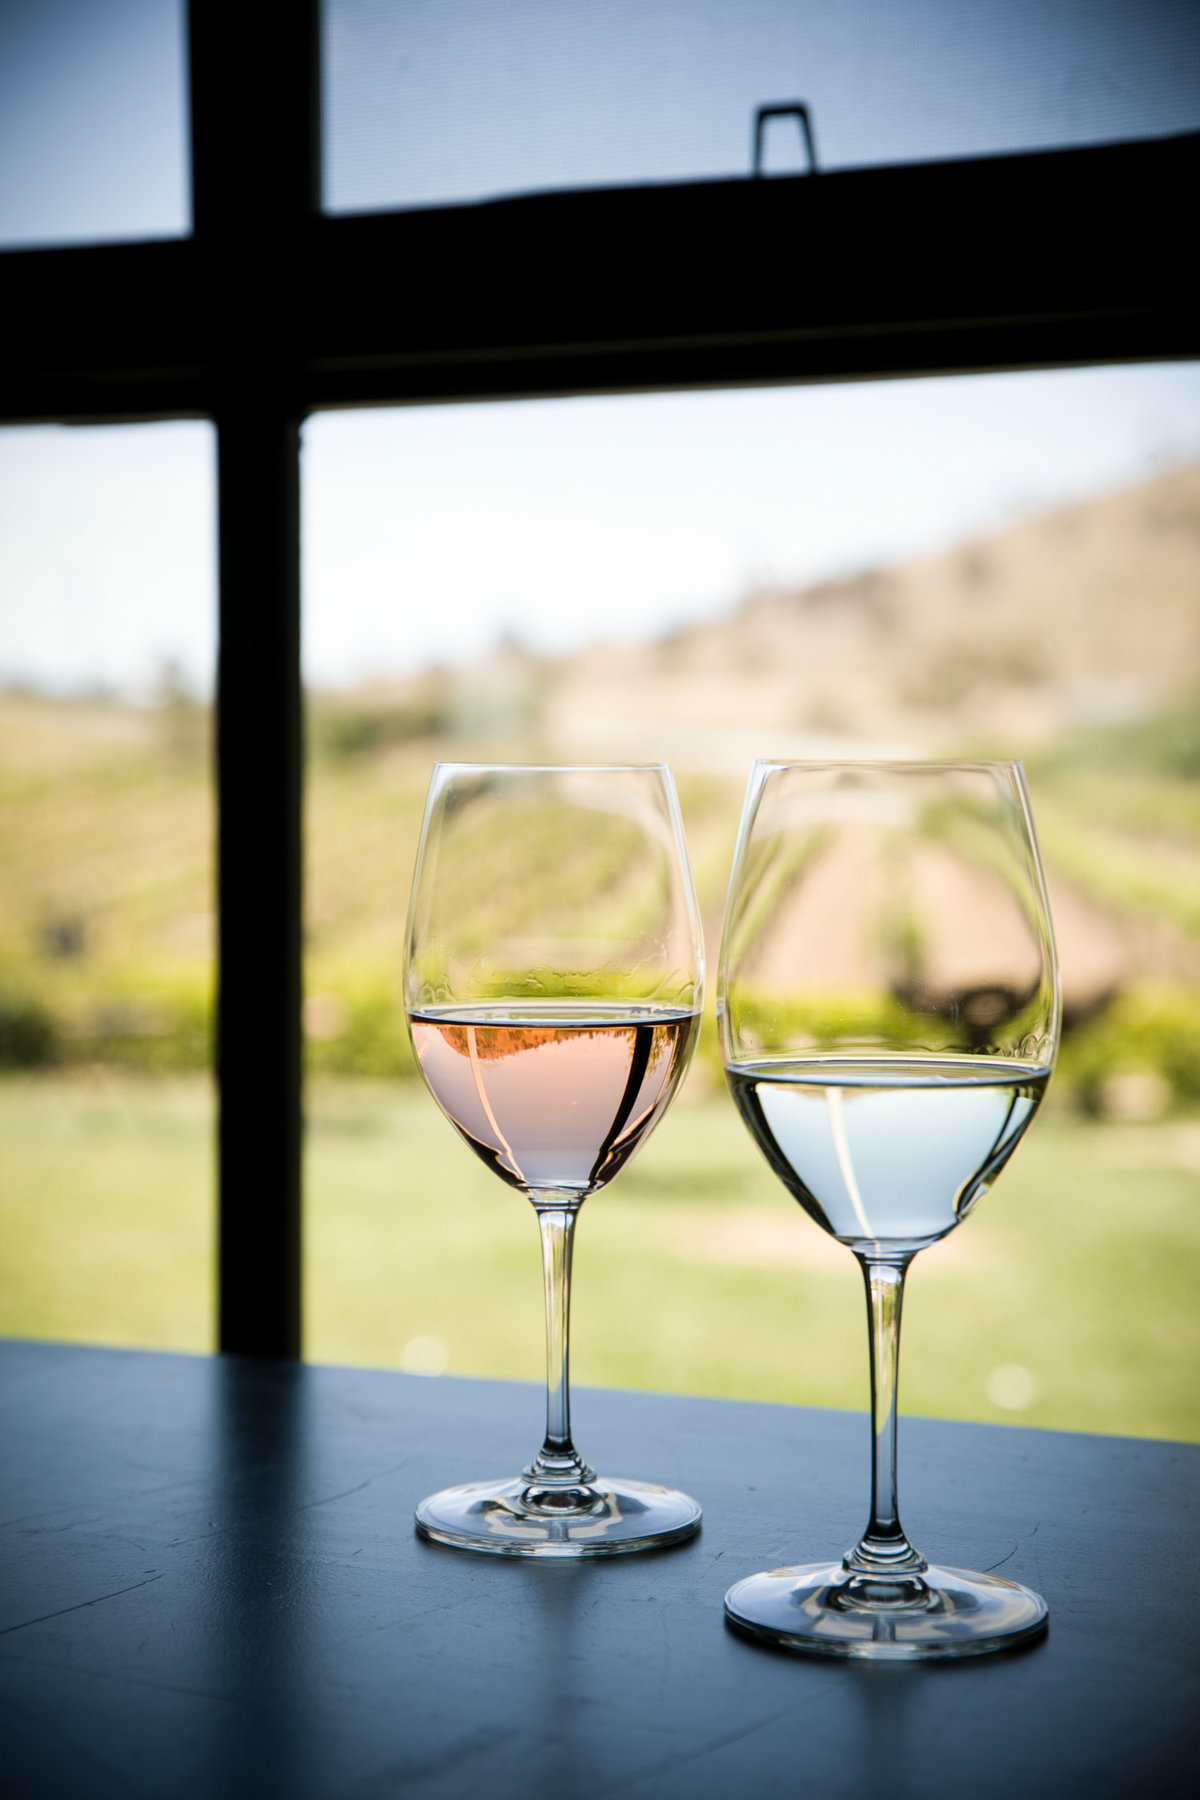 Brindabella Winery - Anisa Sabet - Photographer-141